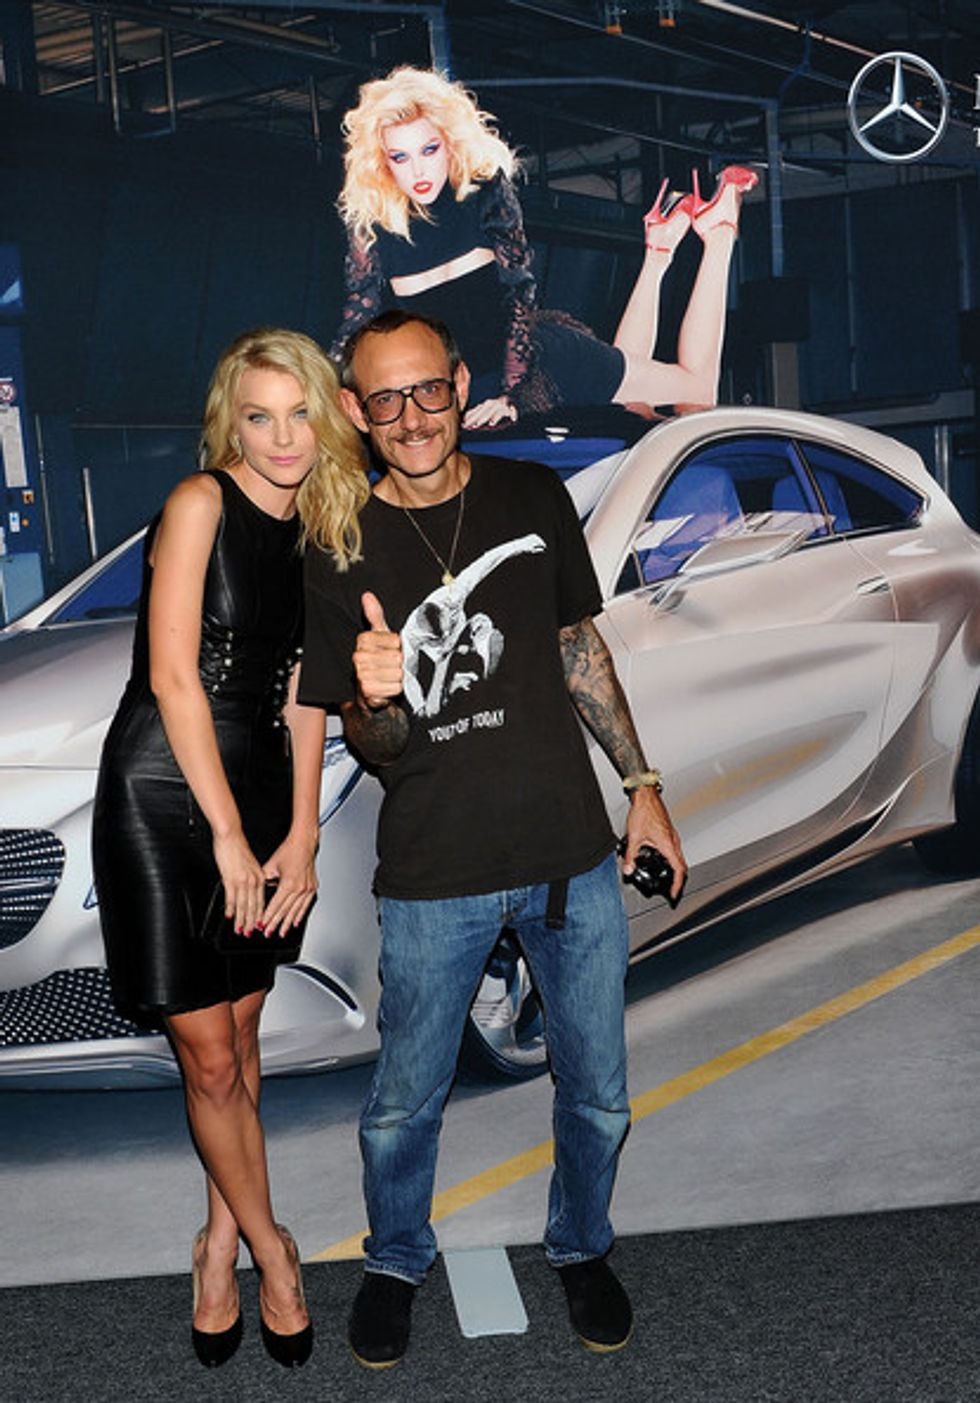 Shooting the Breeze With Jessica Stam and Terry Richardson at the Mercedes-Benz Star Lounge